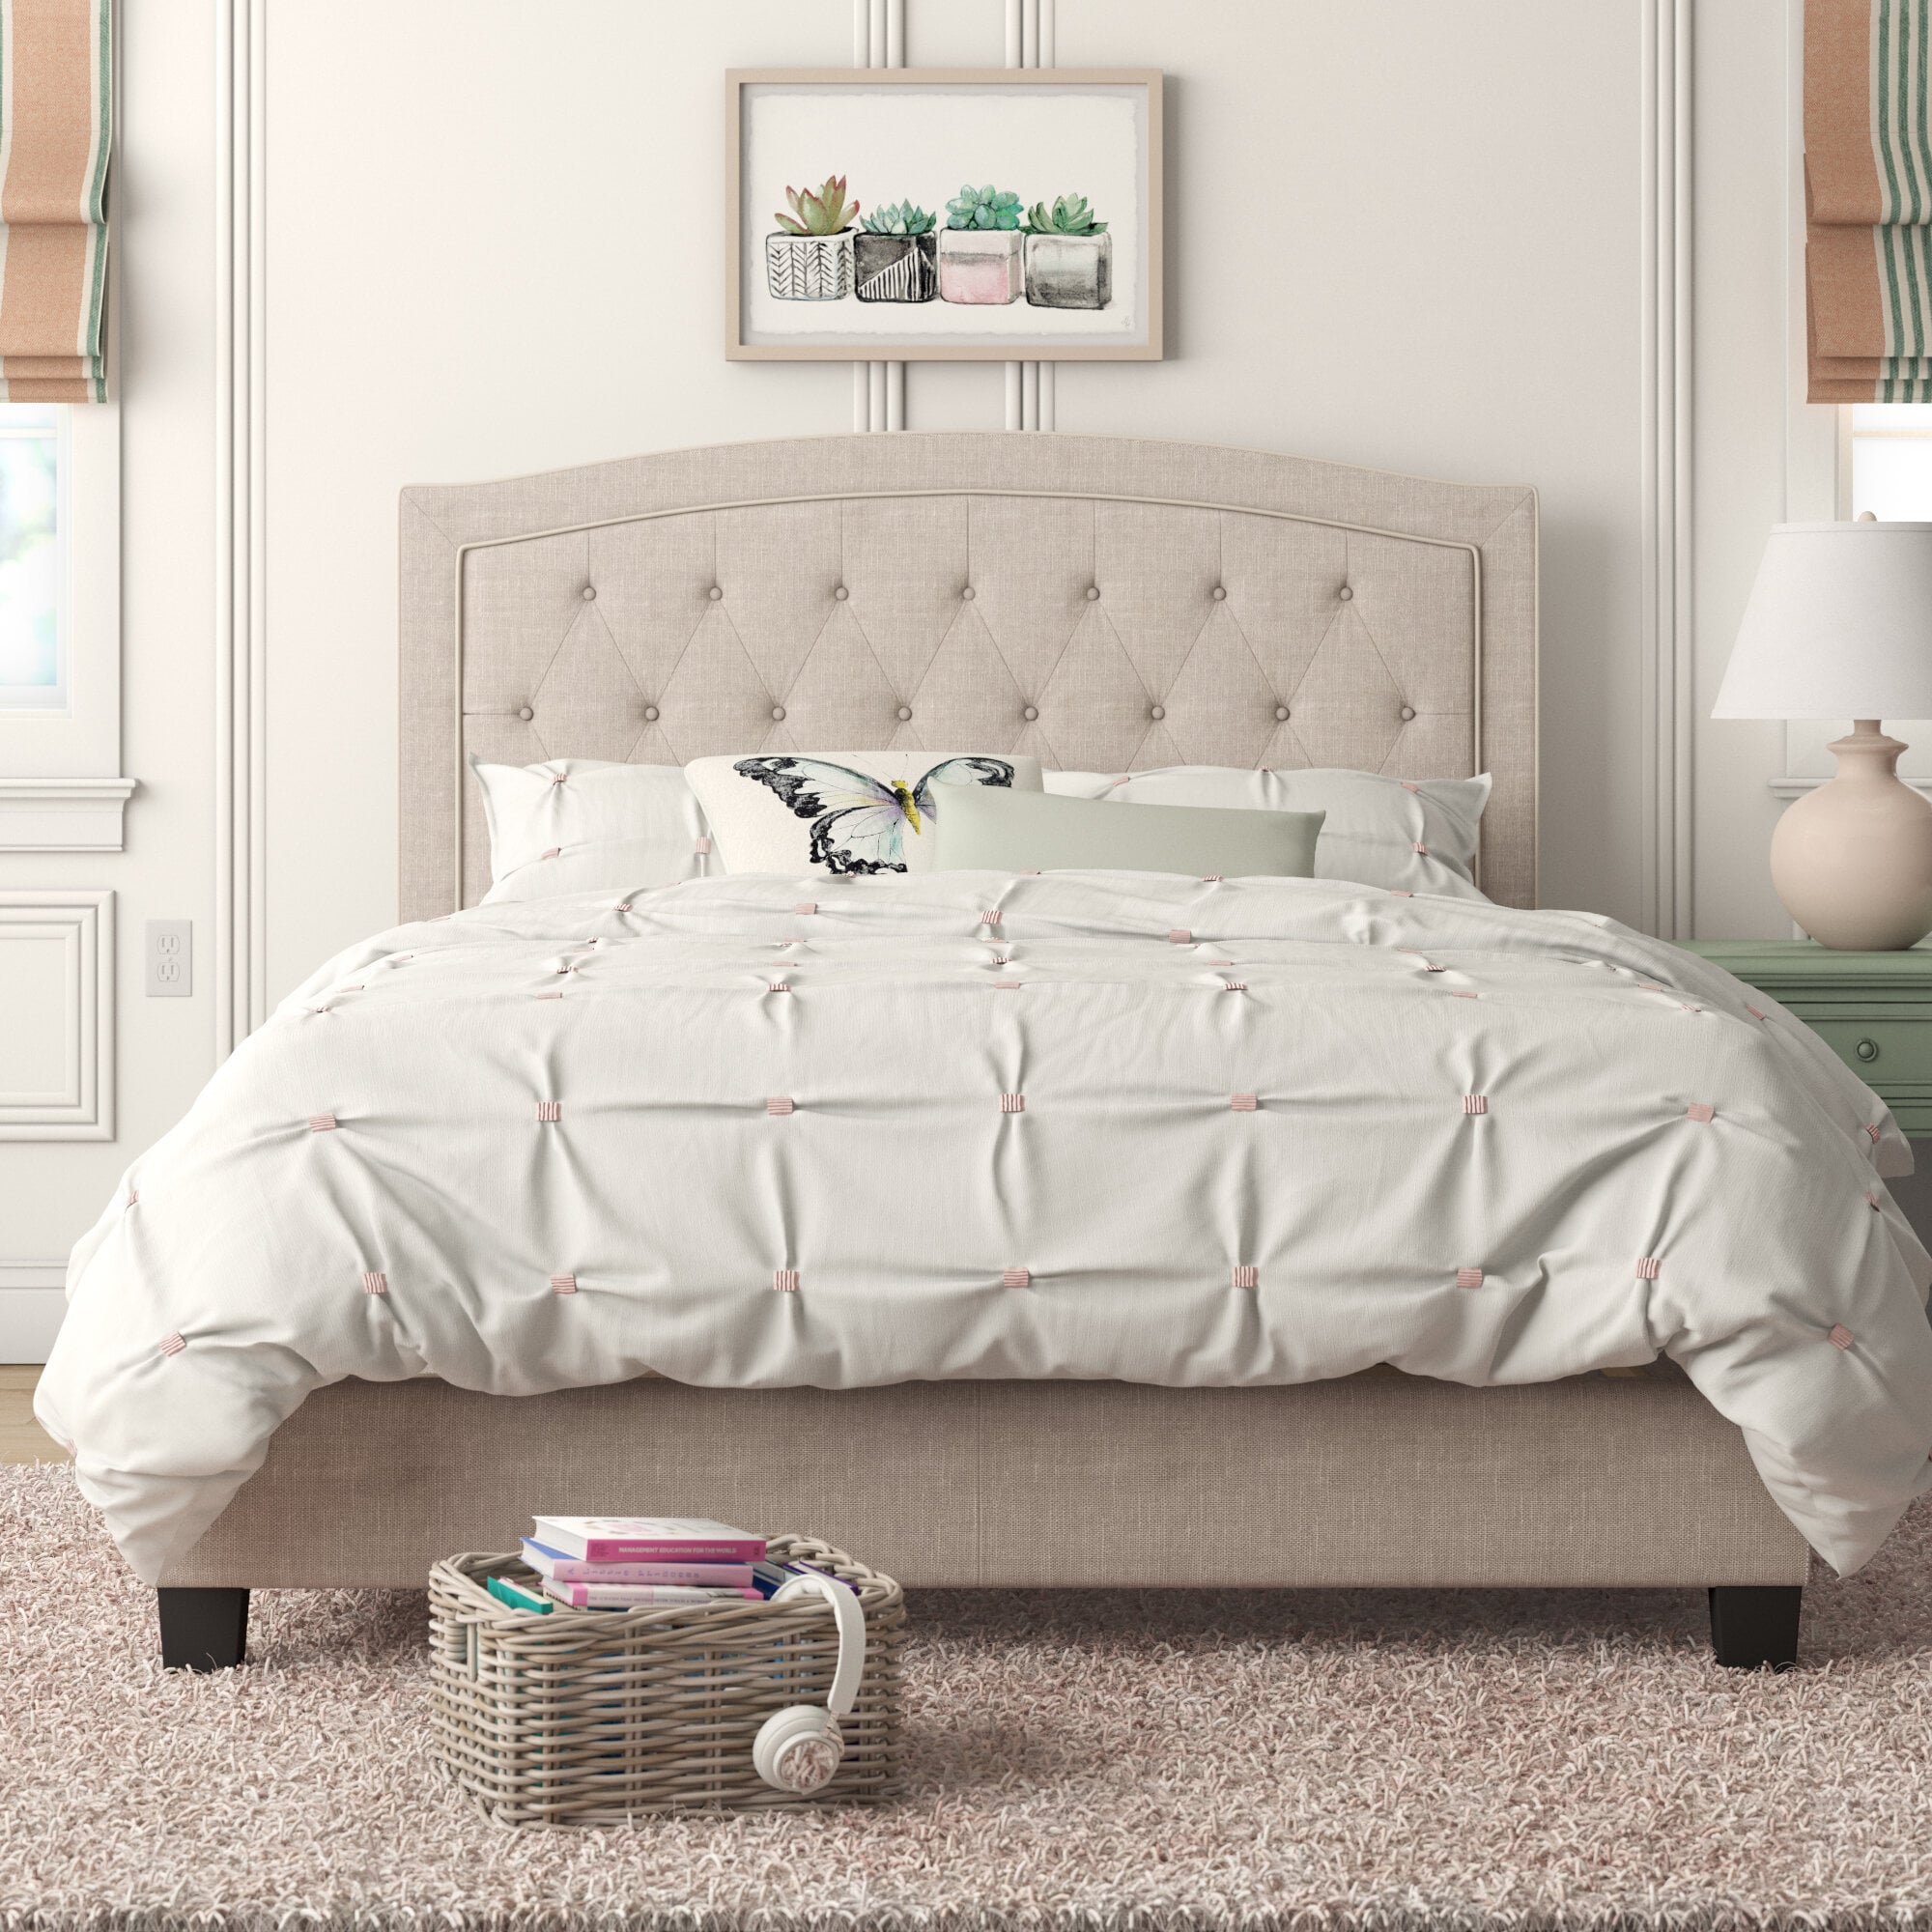 The Best Upholstered Beds And Headboards Popsugar Home